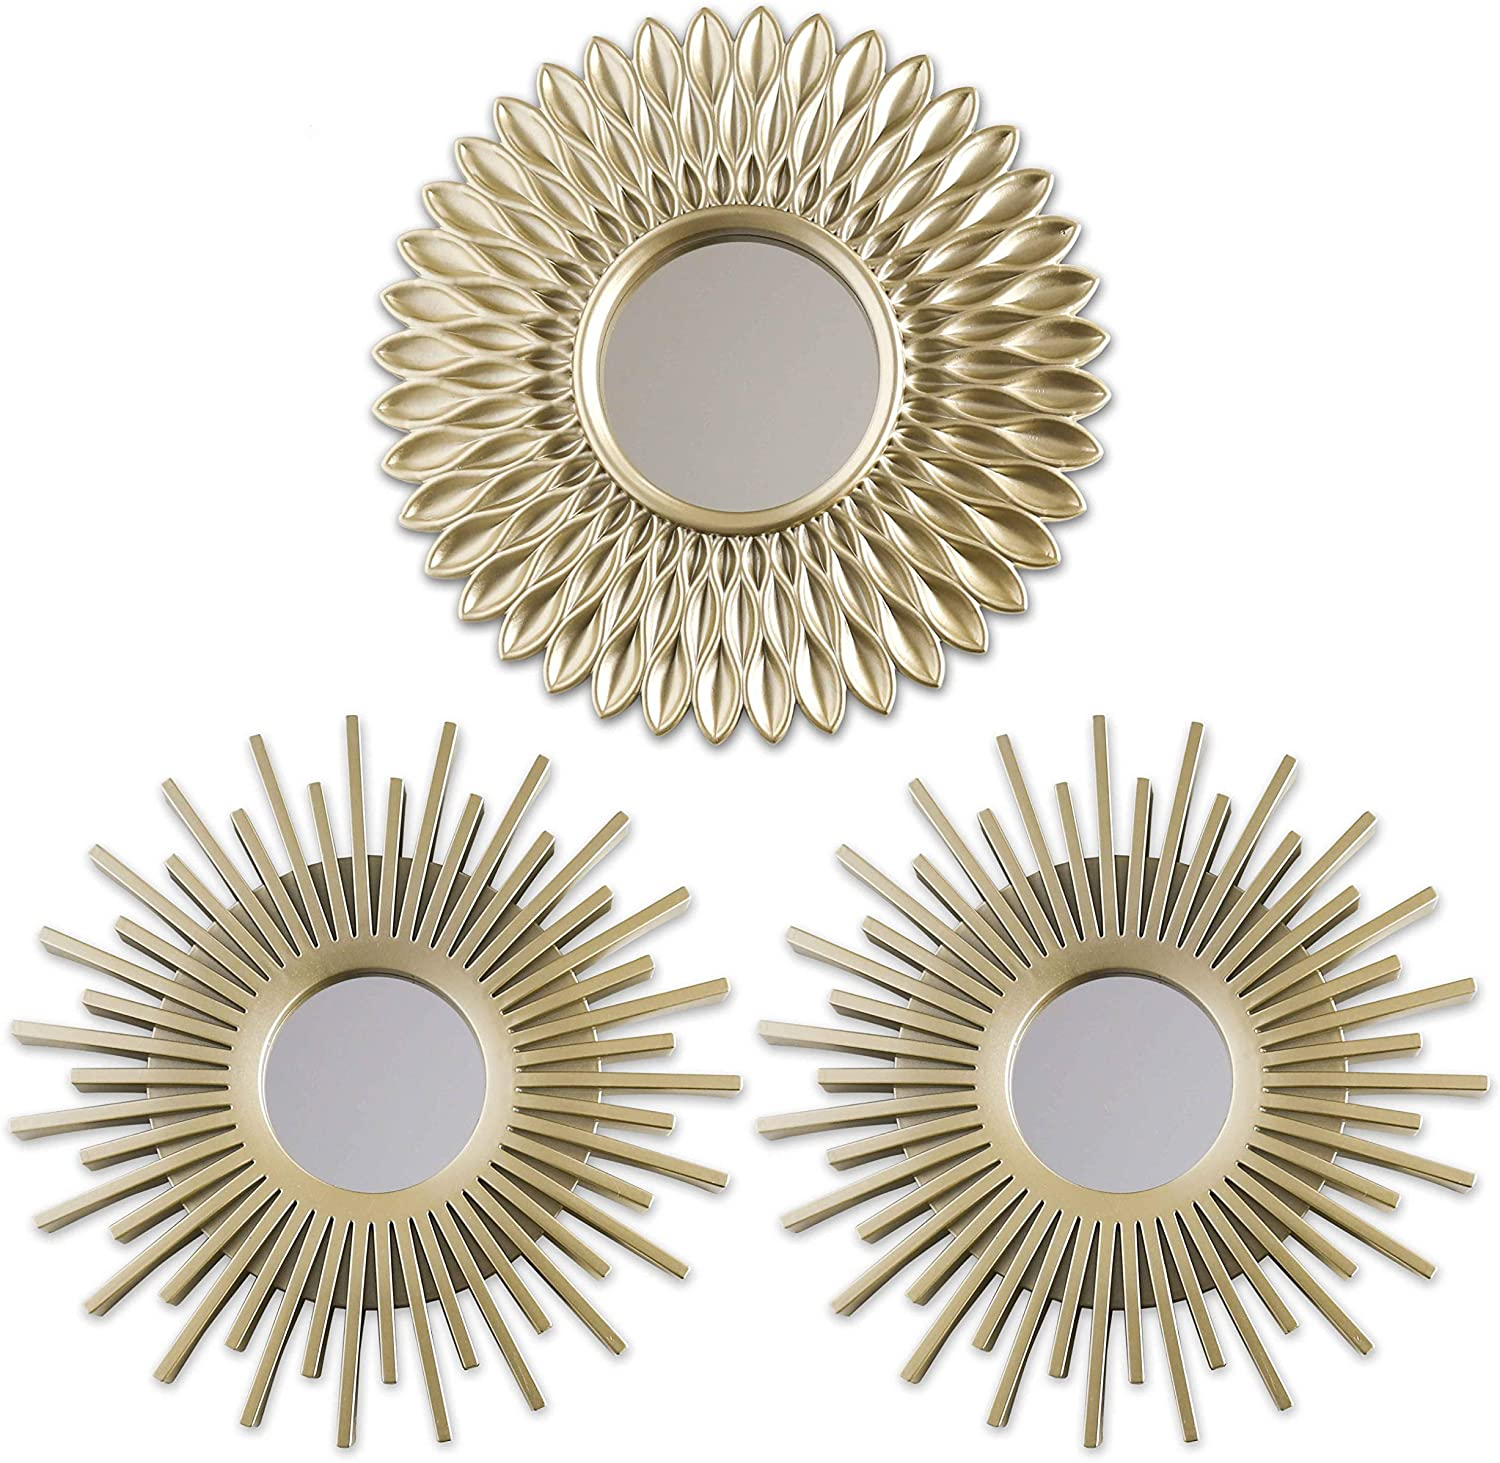 Gold Mirrors for Wall Pack of 3 - BONNYCO   Wall Mirrors for Room Decor & Home Decor   Champagne Gold Round Mirrors for Wall Decor   Circle Mirrors Modern Gifts for Women & Moms   Decorative Mirrors…